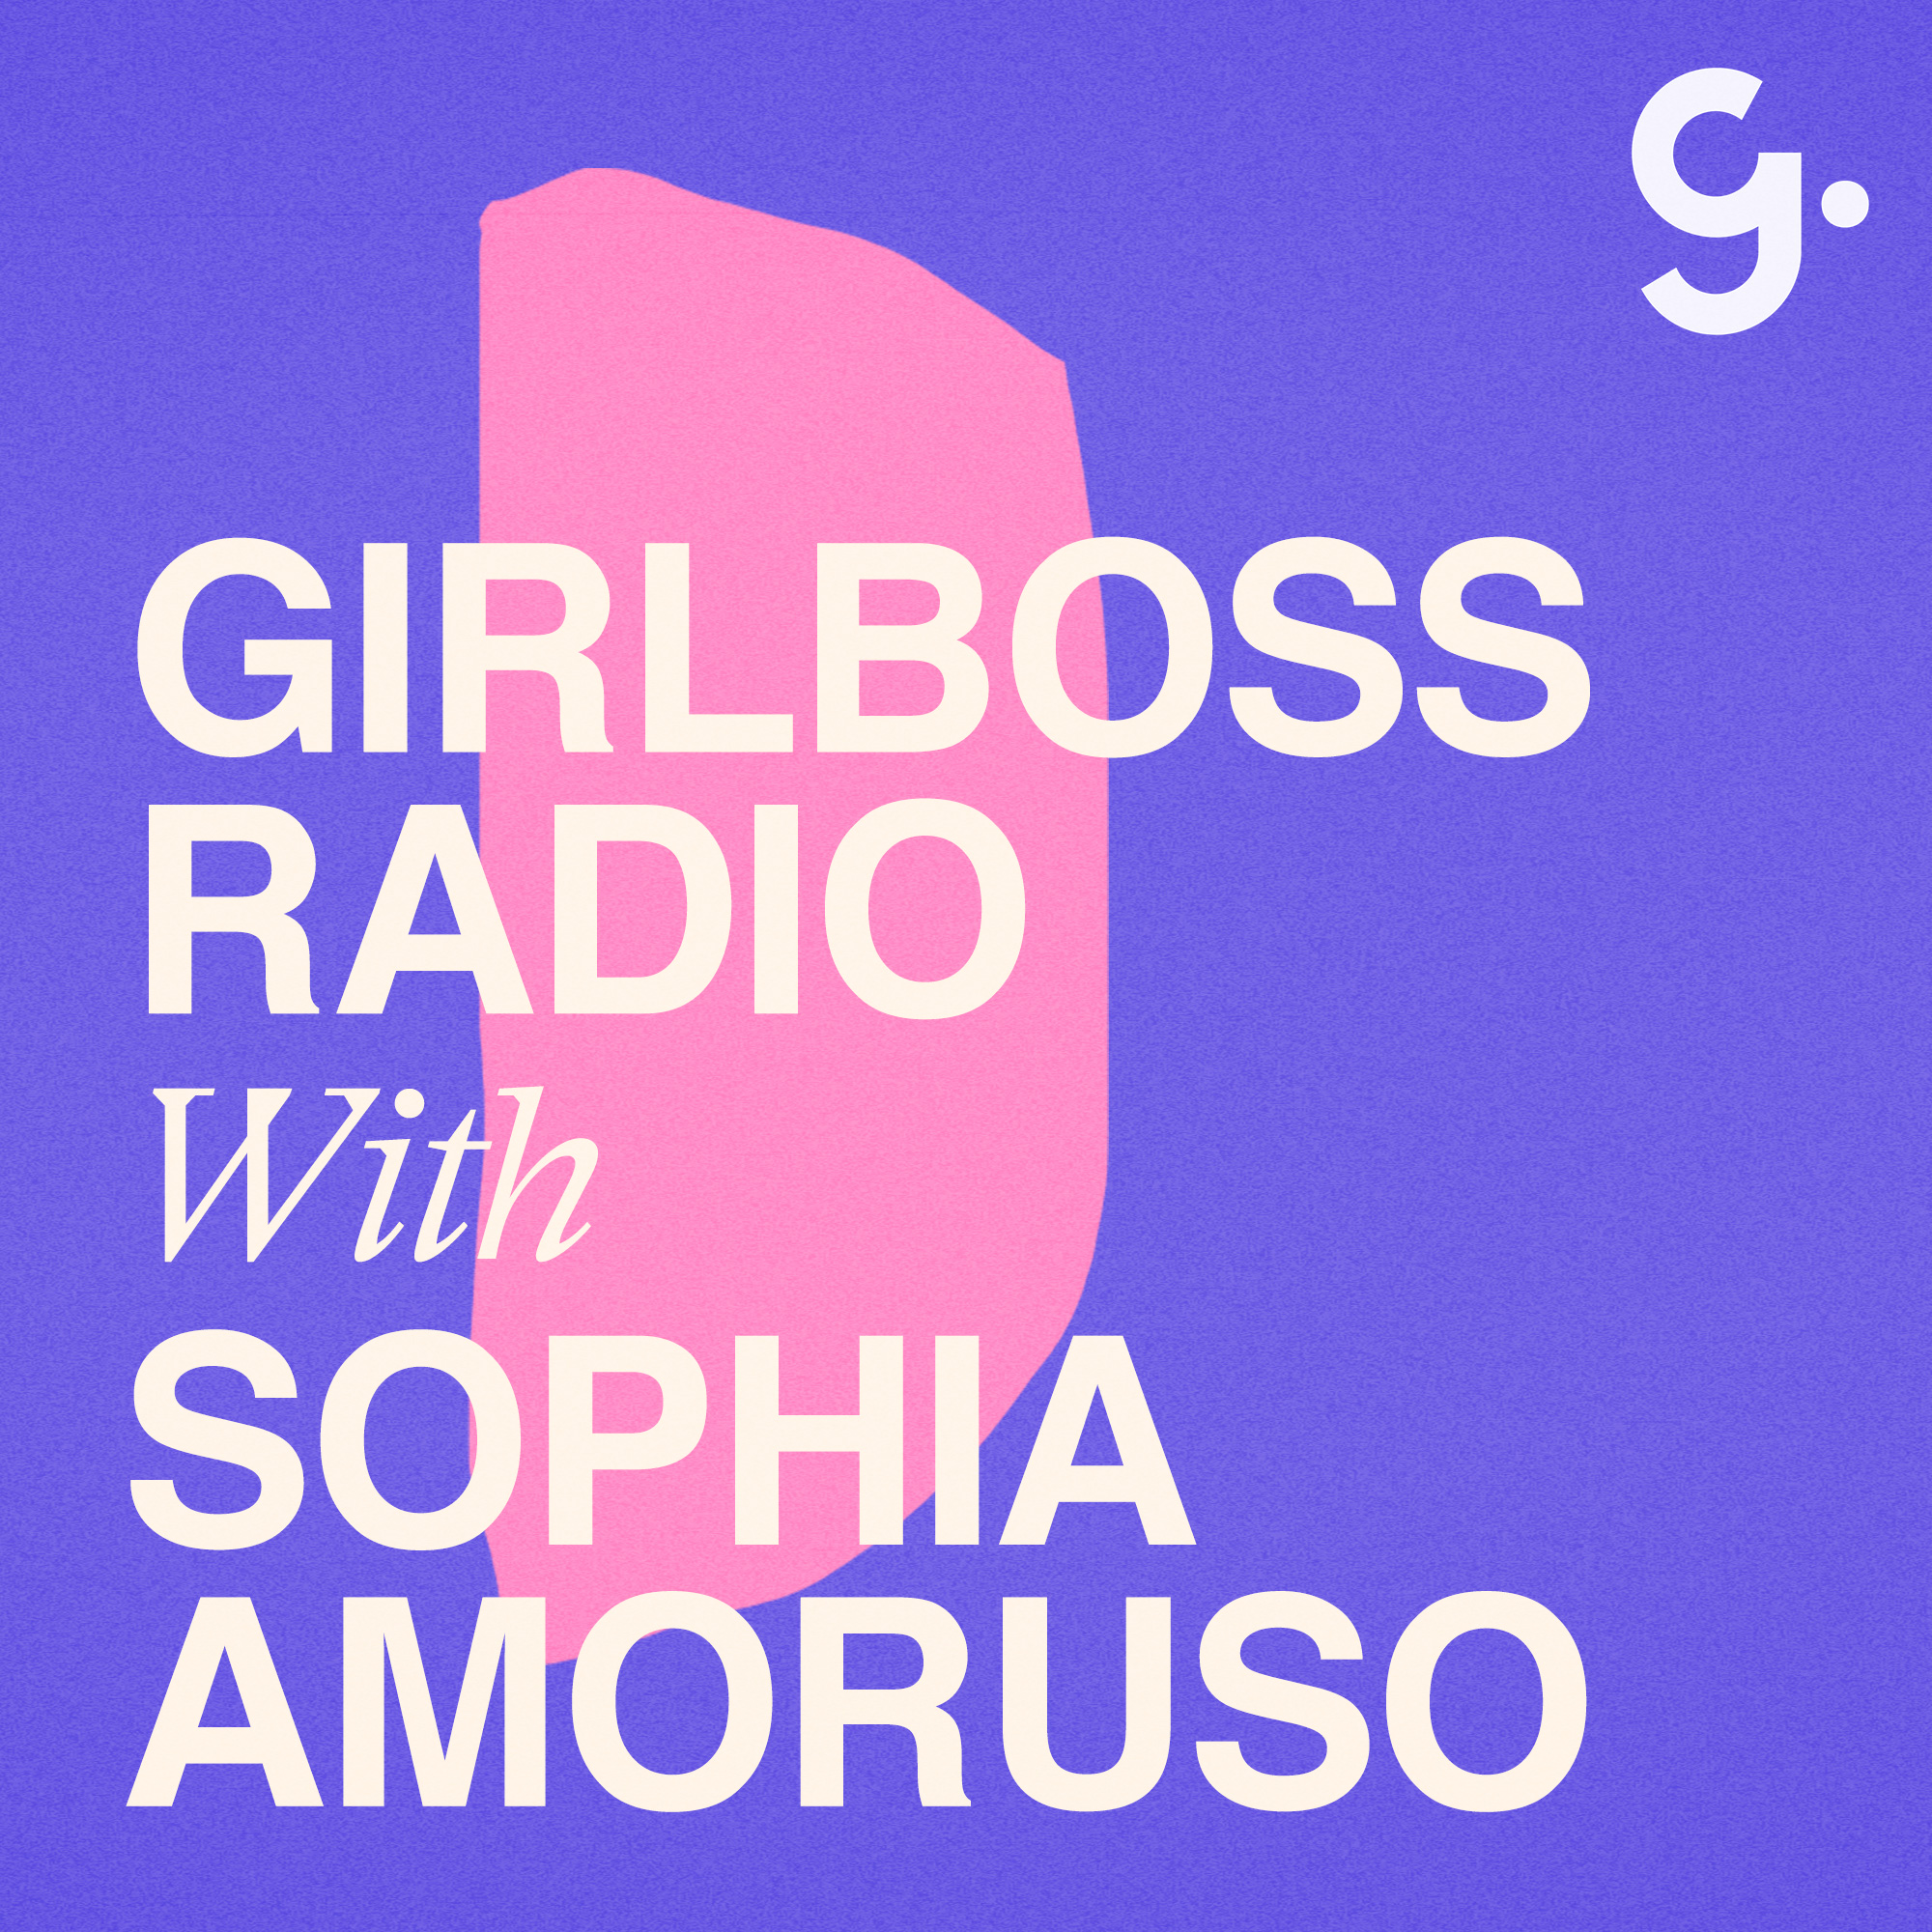 Girlboss Radio with Sophia Amoruso - A re-launch and chapter 2 of Sophia's life in which she talks to women about being the boss of their lives, as she continues to take charge of her life. Listen